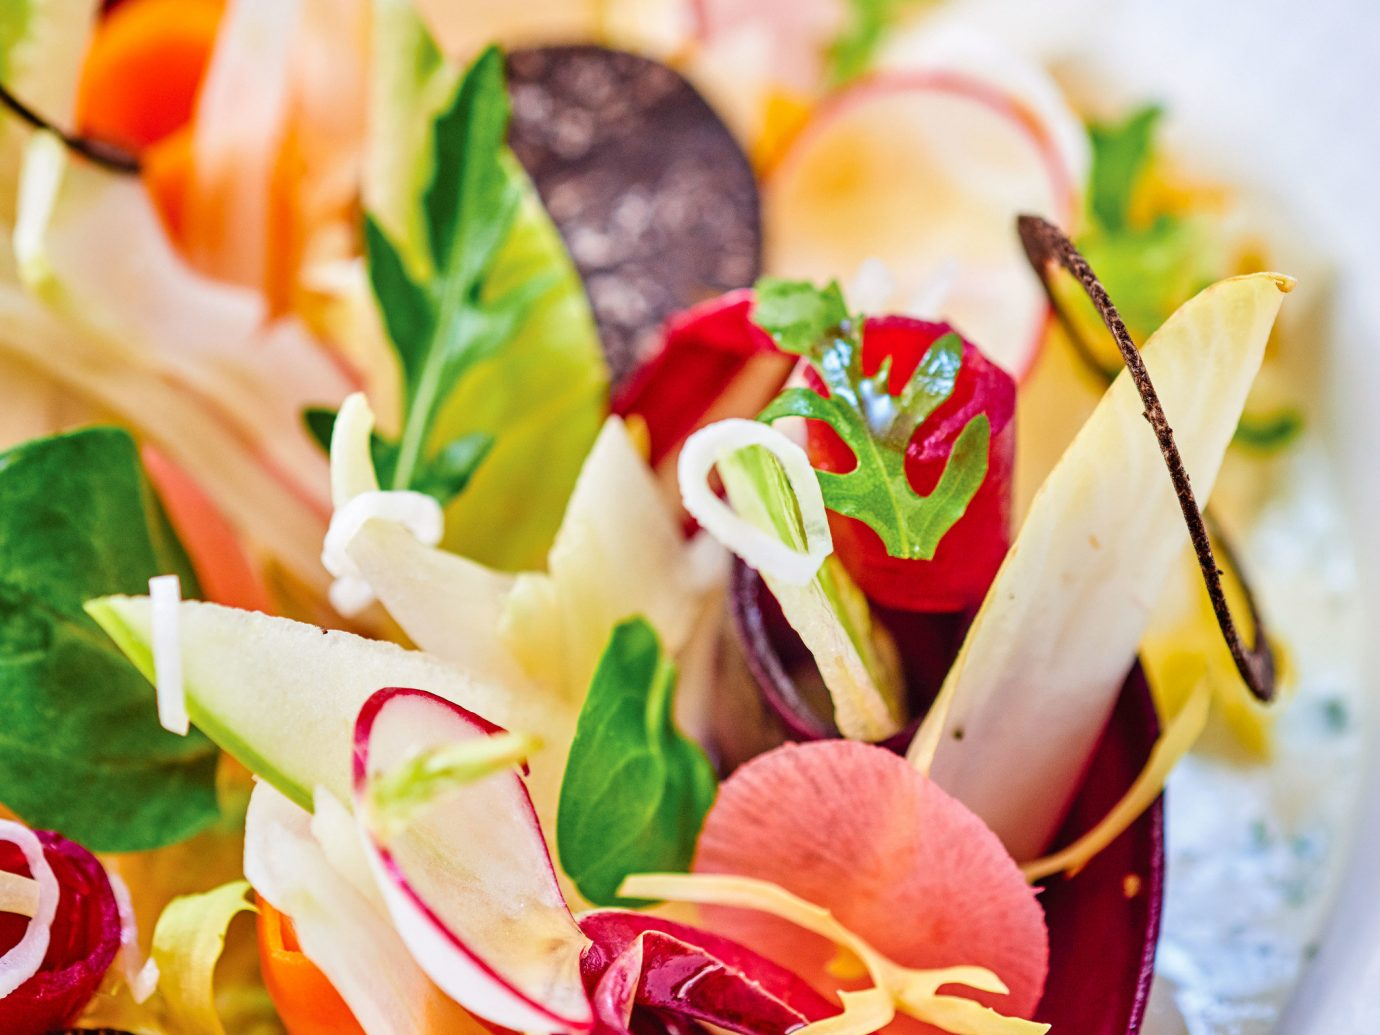 Food + Drink Romance food dish appetizer cuisine vegetable salad vegetarian food hors d oeuvre garnish finger food canapé recipe fruit plant fresh containing colored